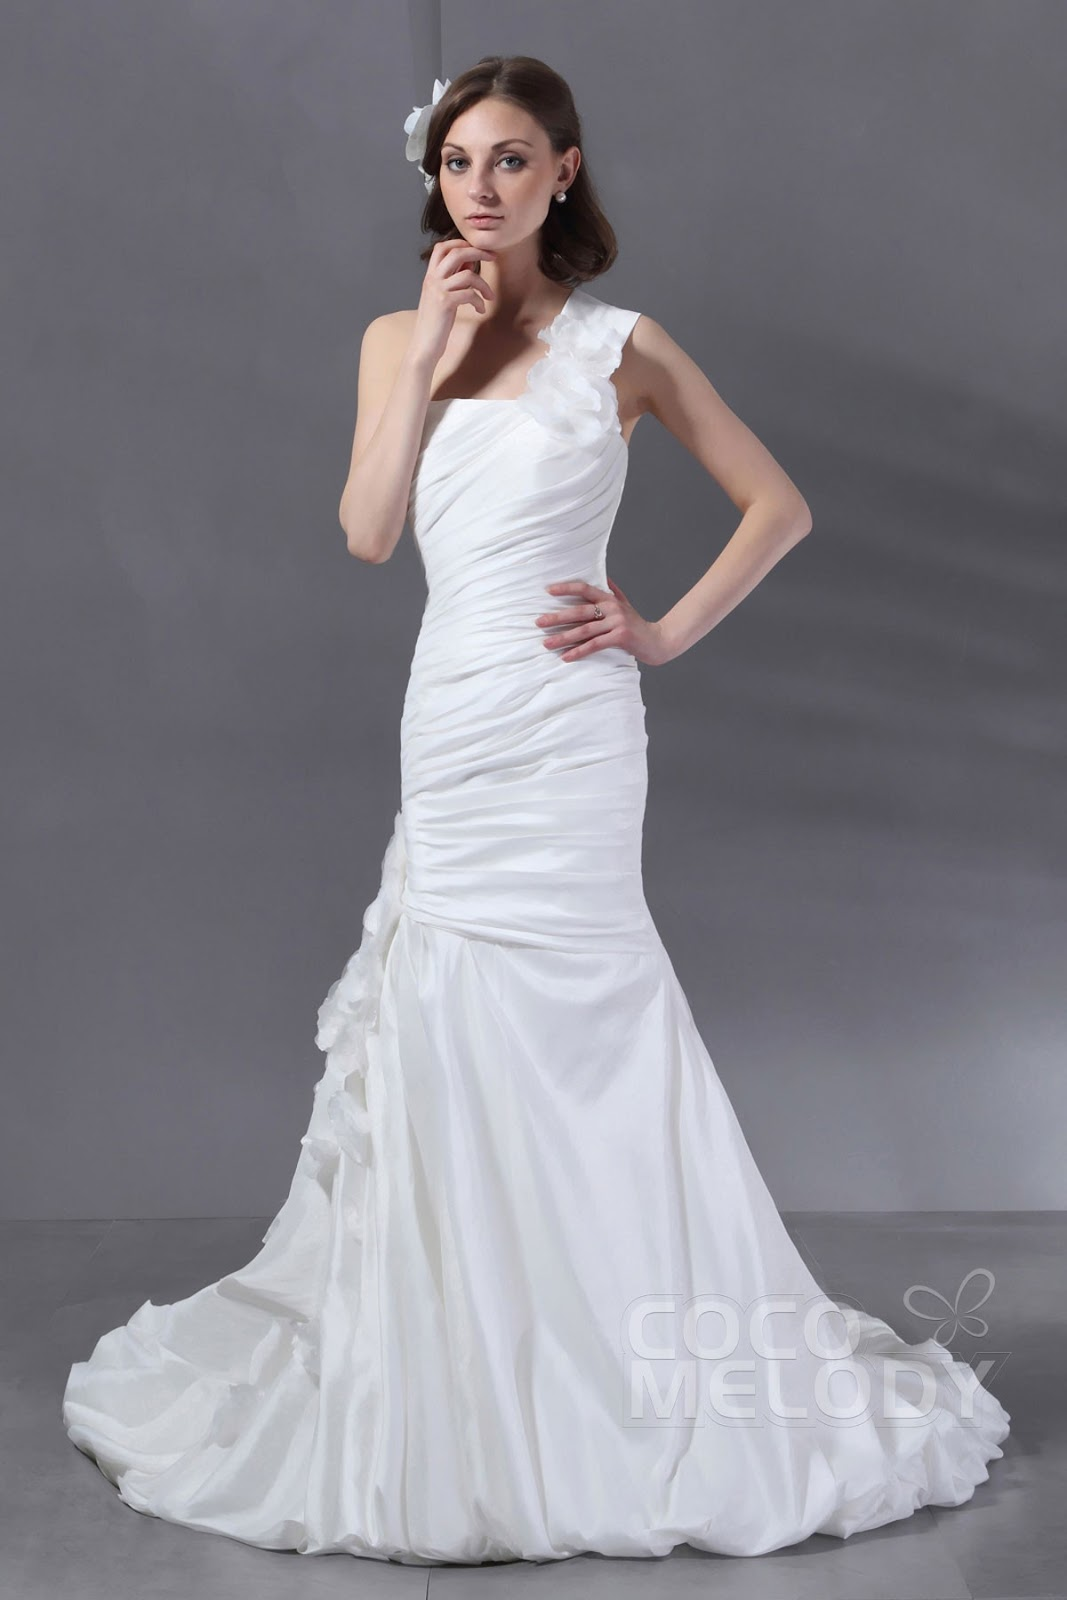 2013 the most elegant wedding dress